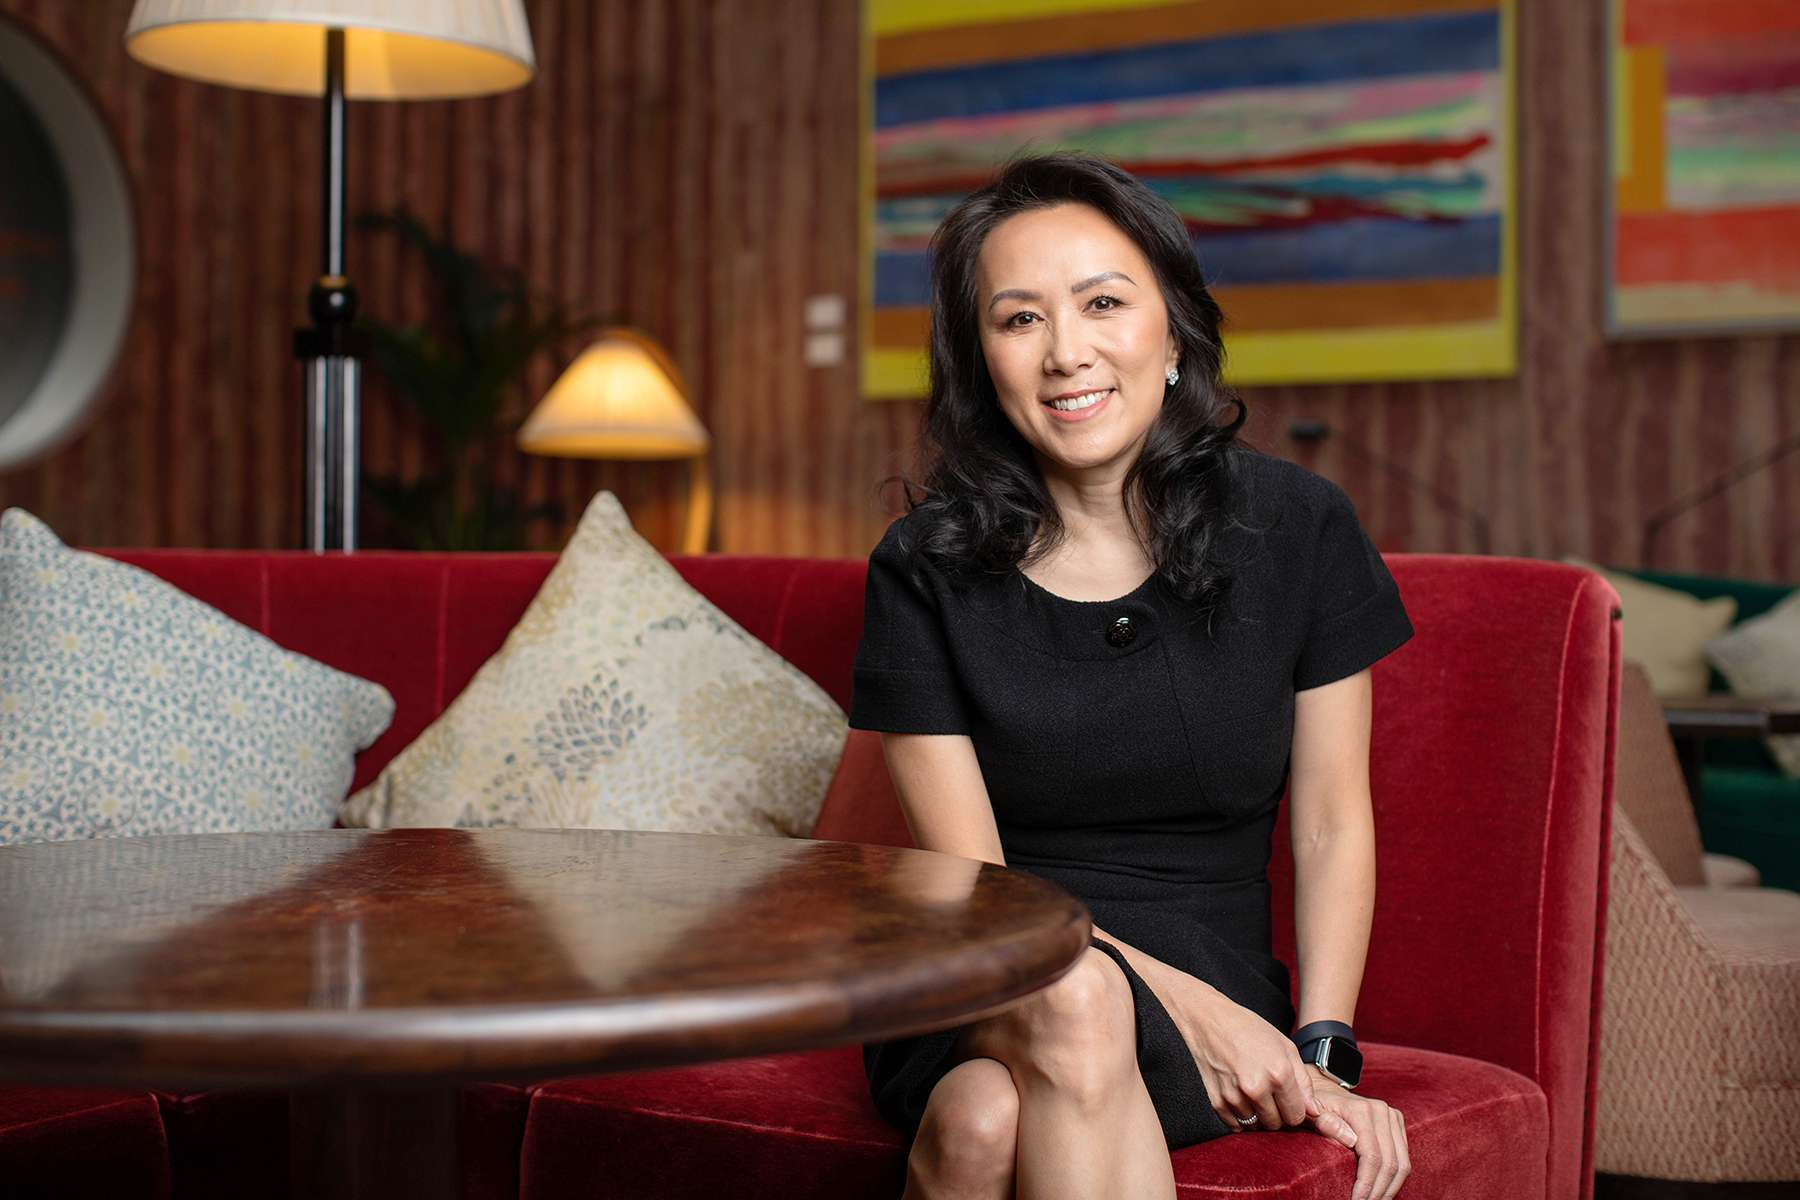 Adrianna Ma is the new chief operating officer of Index Ventures. Photo taken by Anna Gordon at the Royal Academy of Arts.